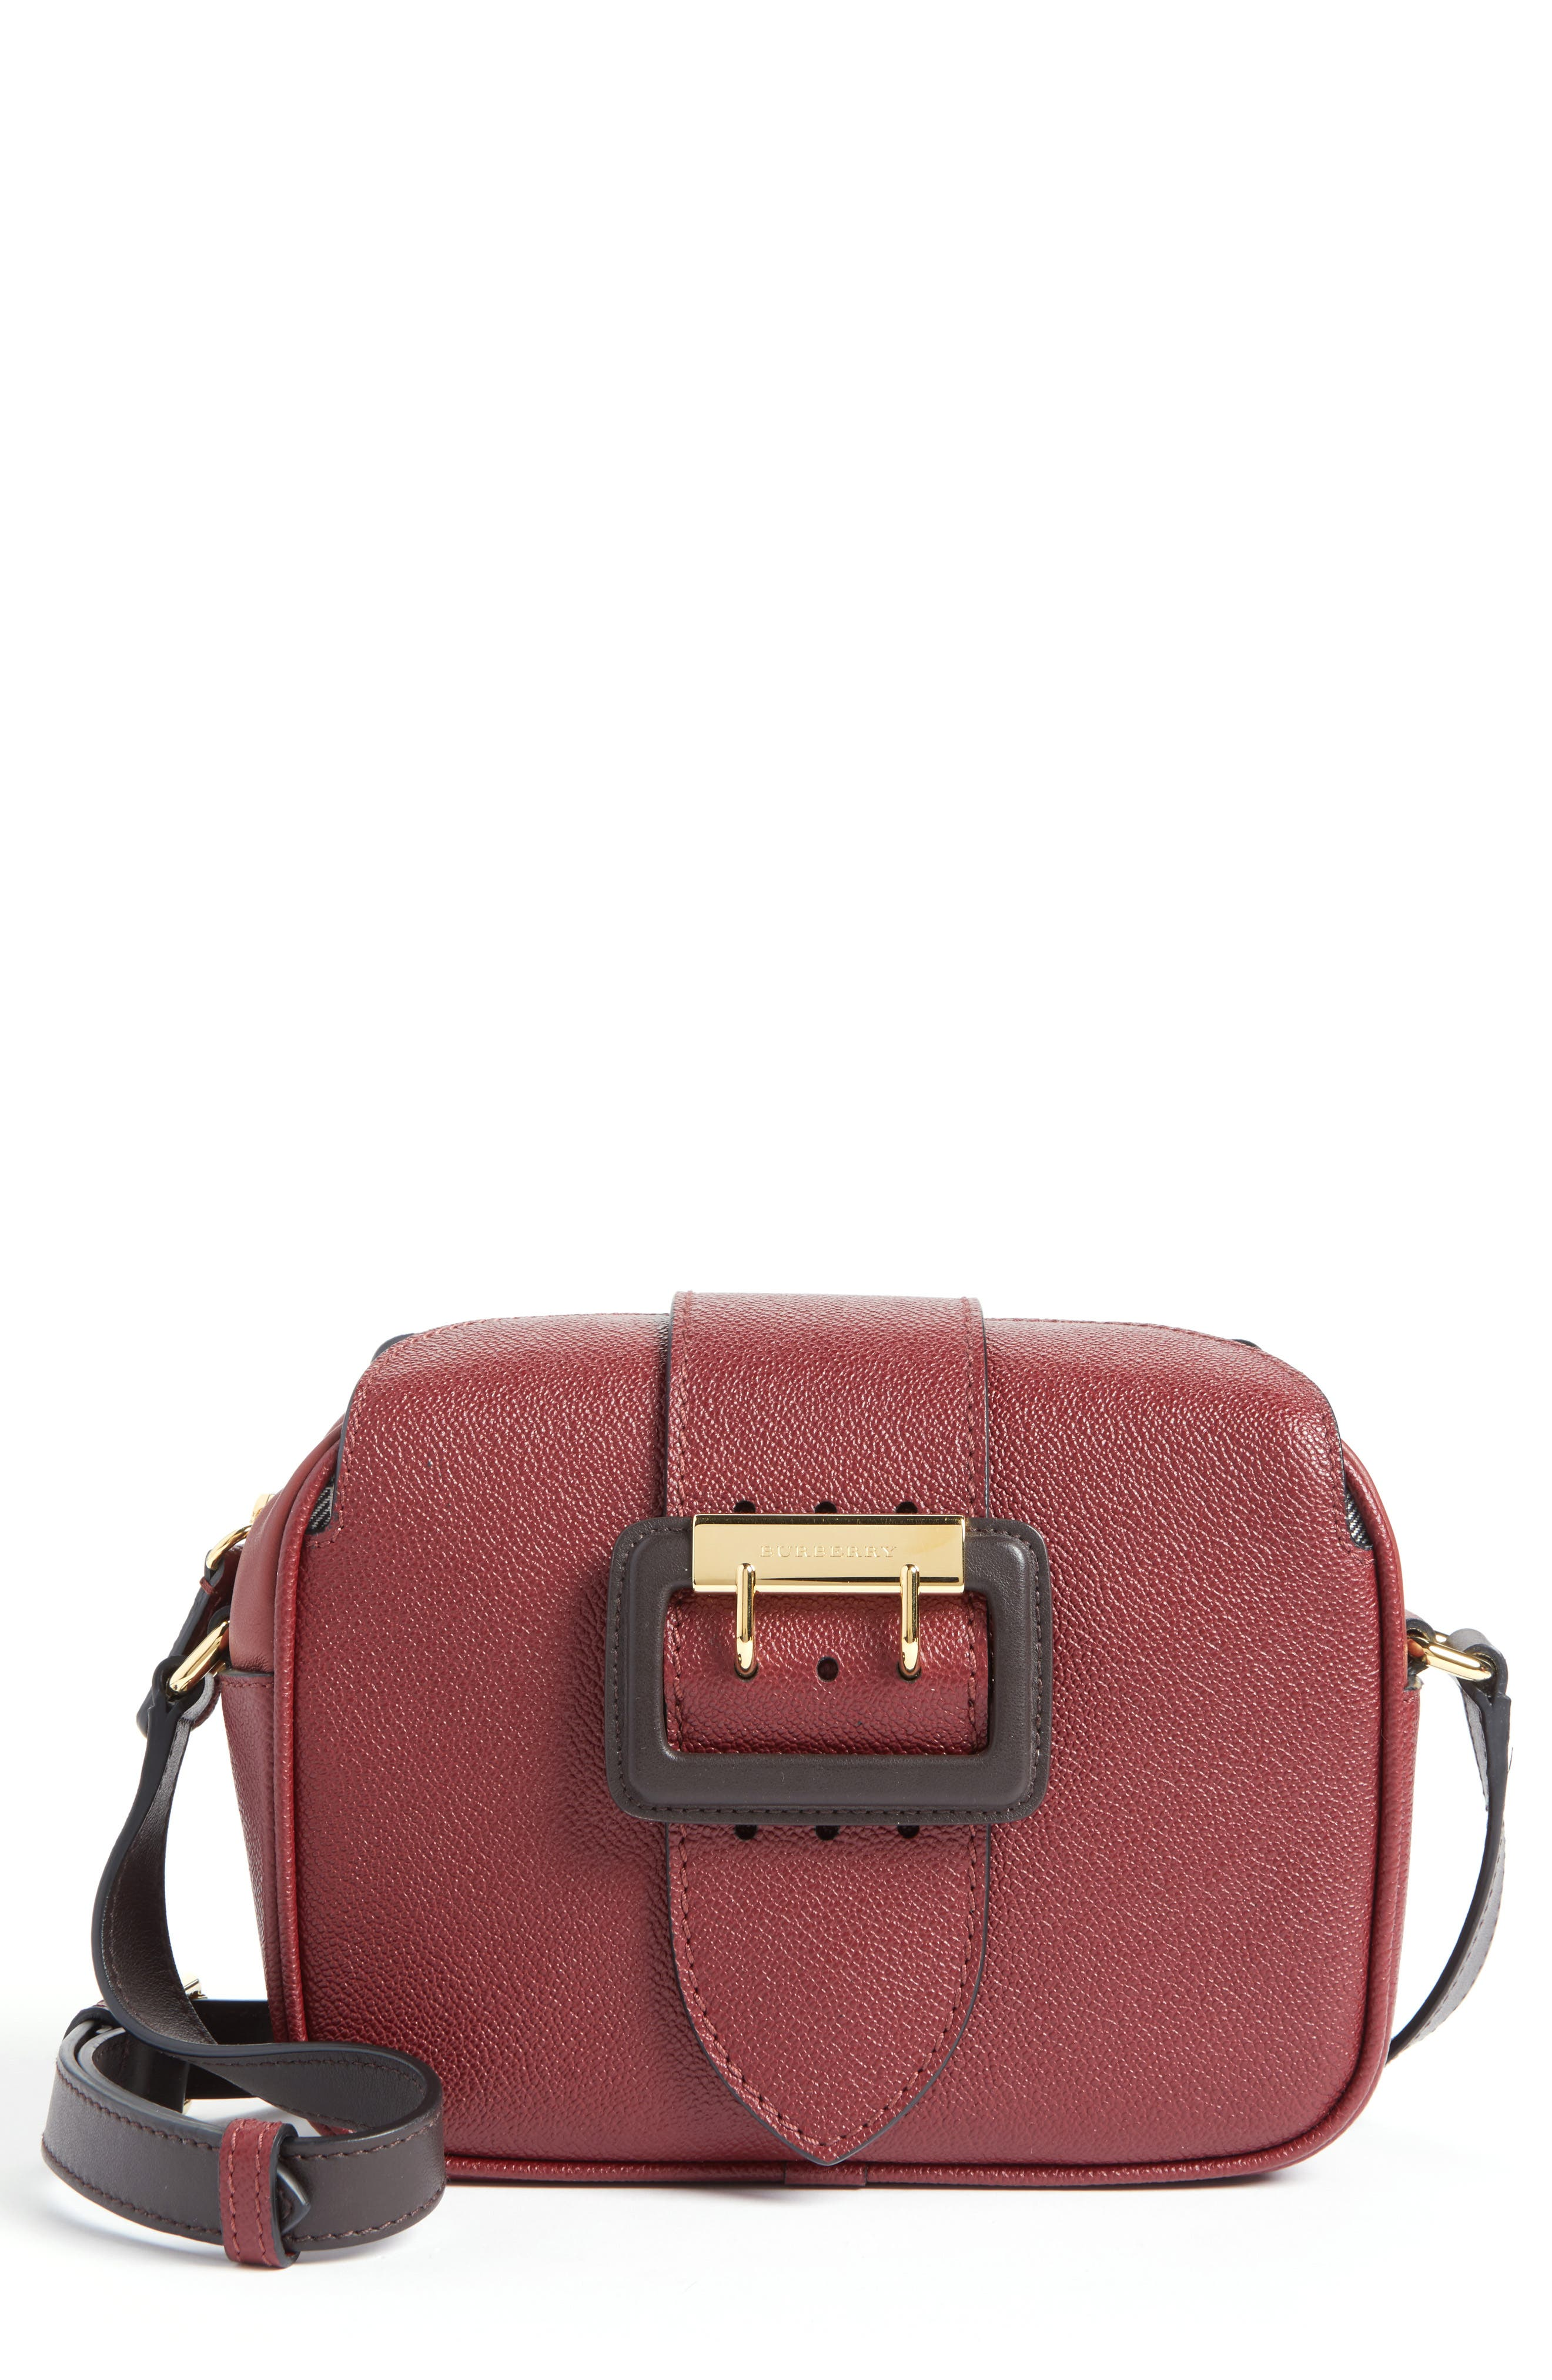 Main Image - Burberry Small Buckle Leather Camera Crossbody Bag